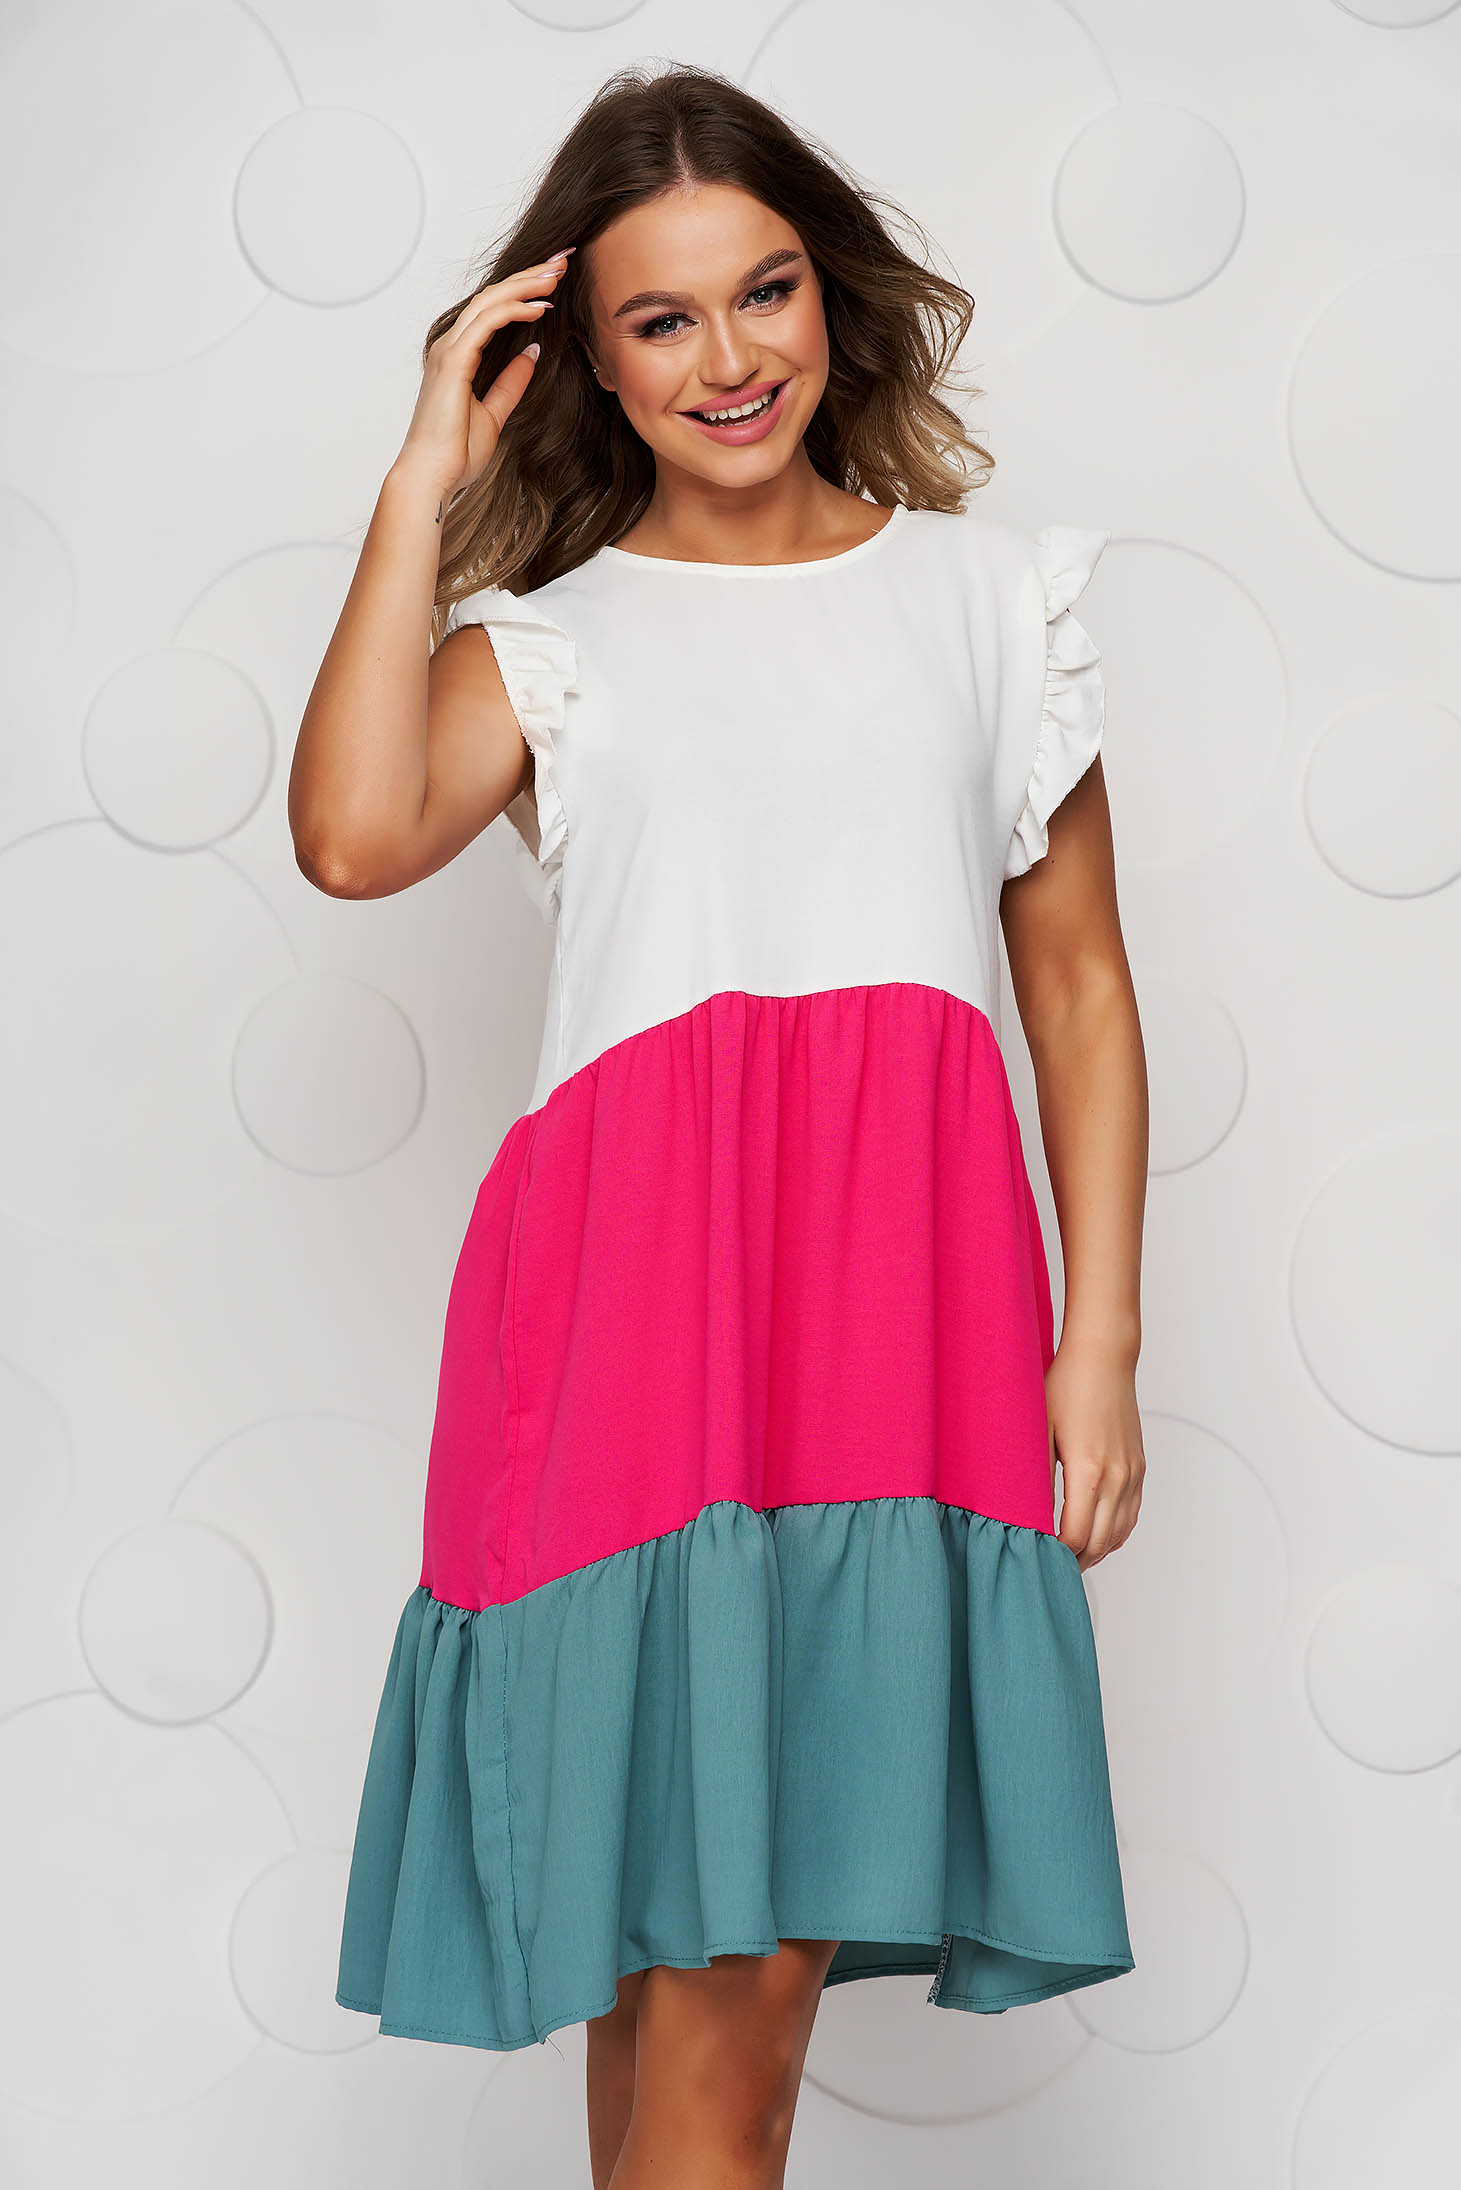 Lightgreen dress thin fabric airy fabric loose fit with ruffle details